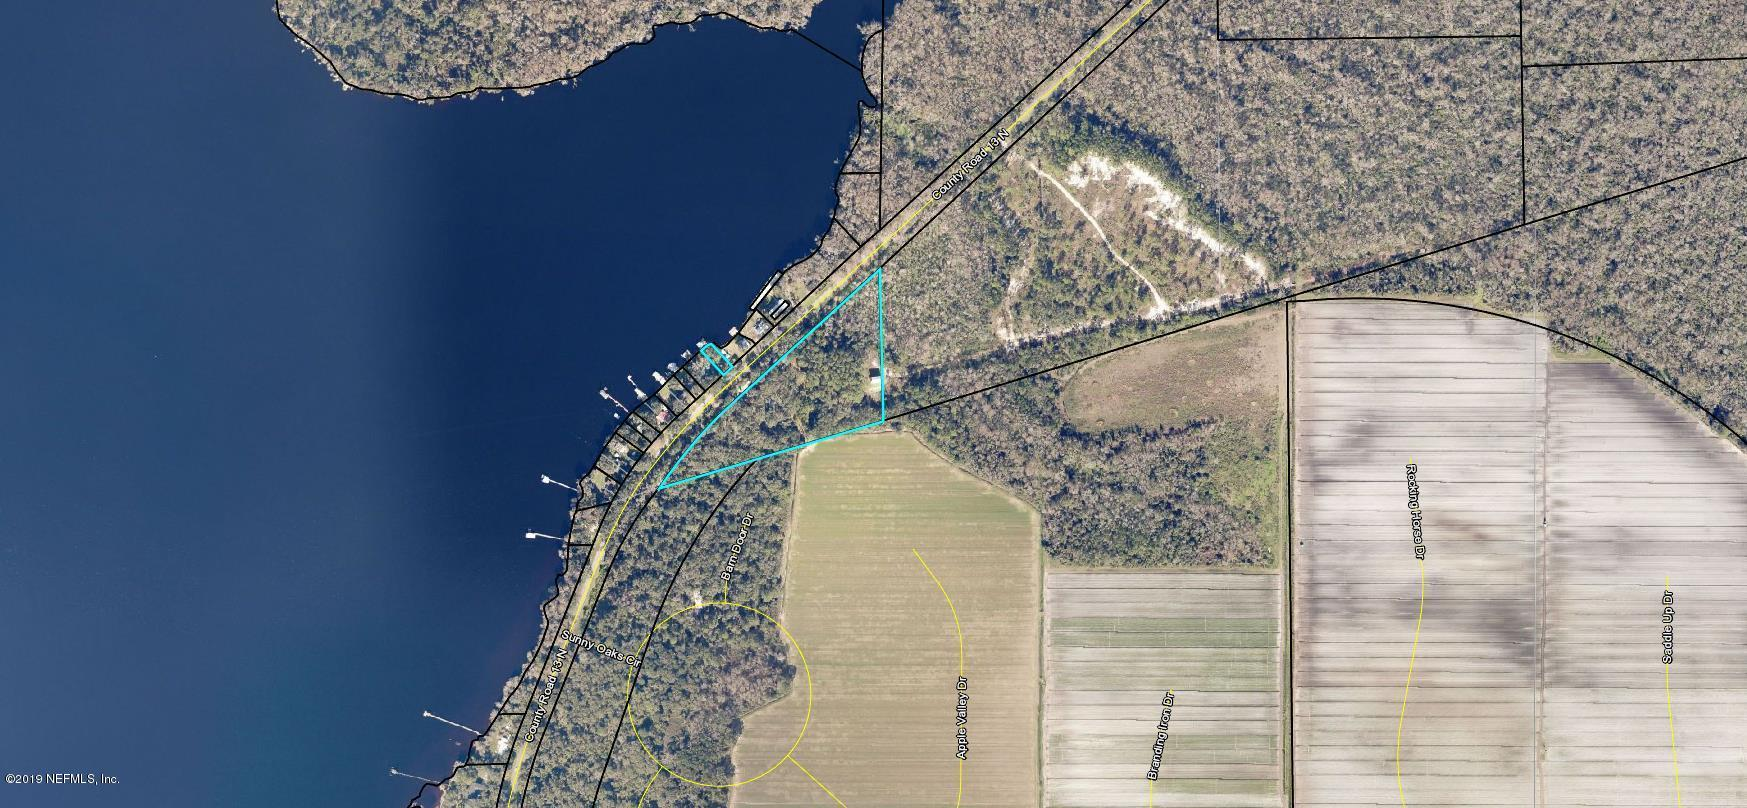 13550 COUNTY RD 13, ST AUGUSTINE, FLORIDA 32092, ,Commercial,For sale,COUNTY RD 13,1028773